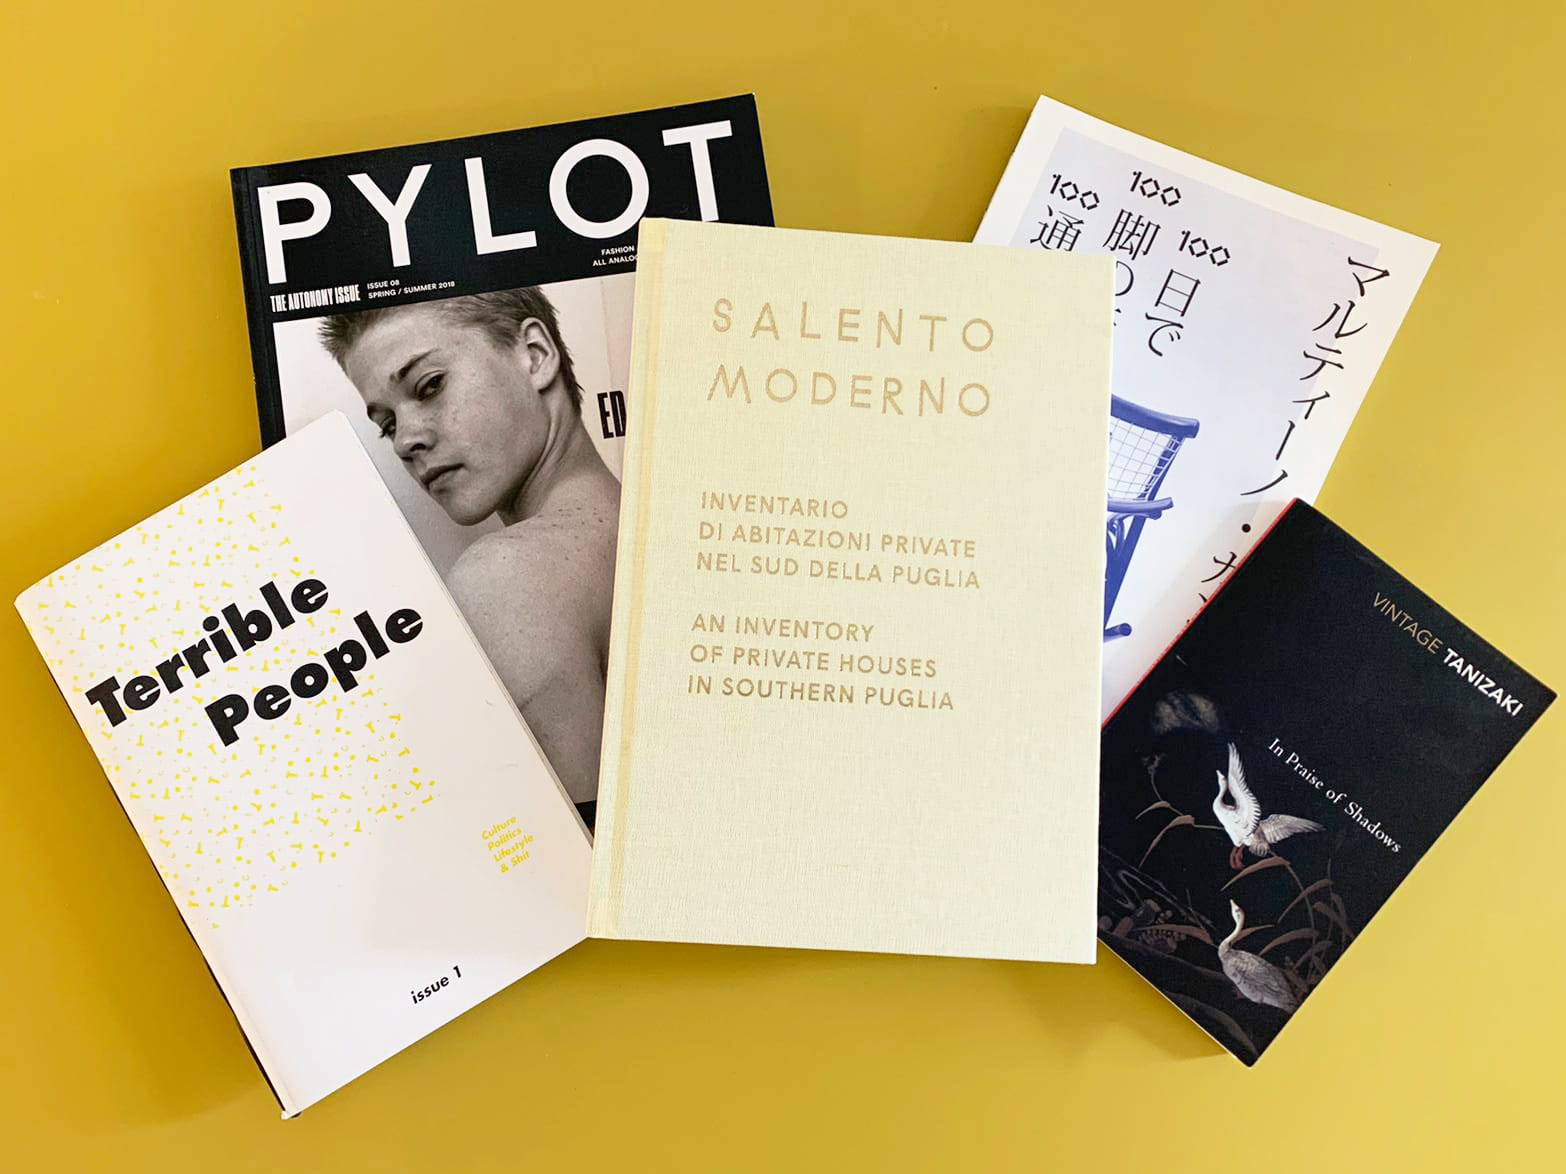 A selection of MA Publishing publications laid against a yellow background.